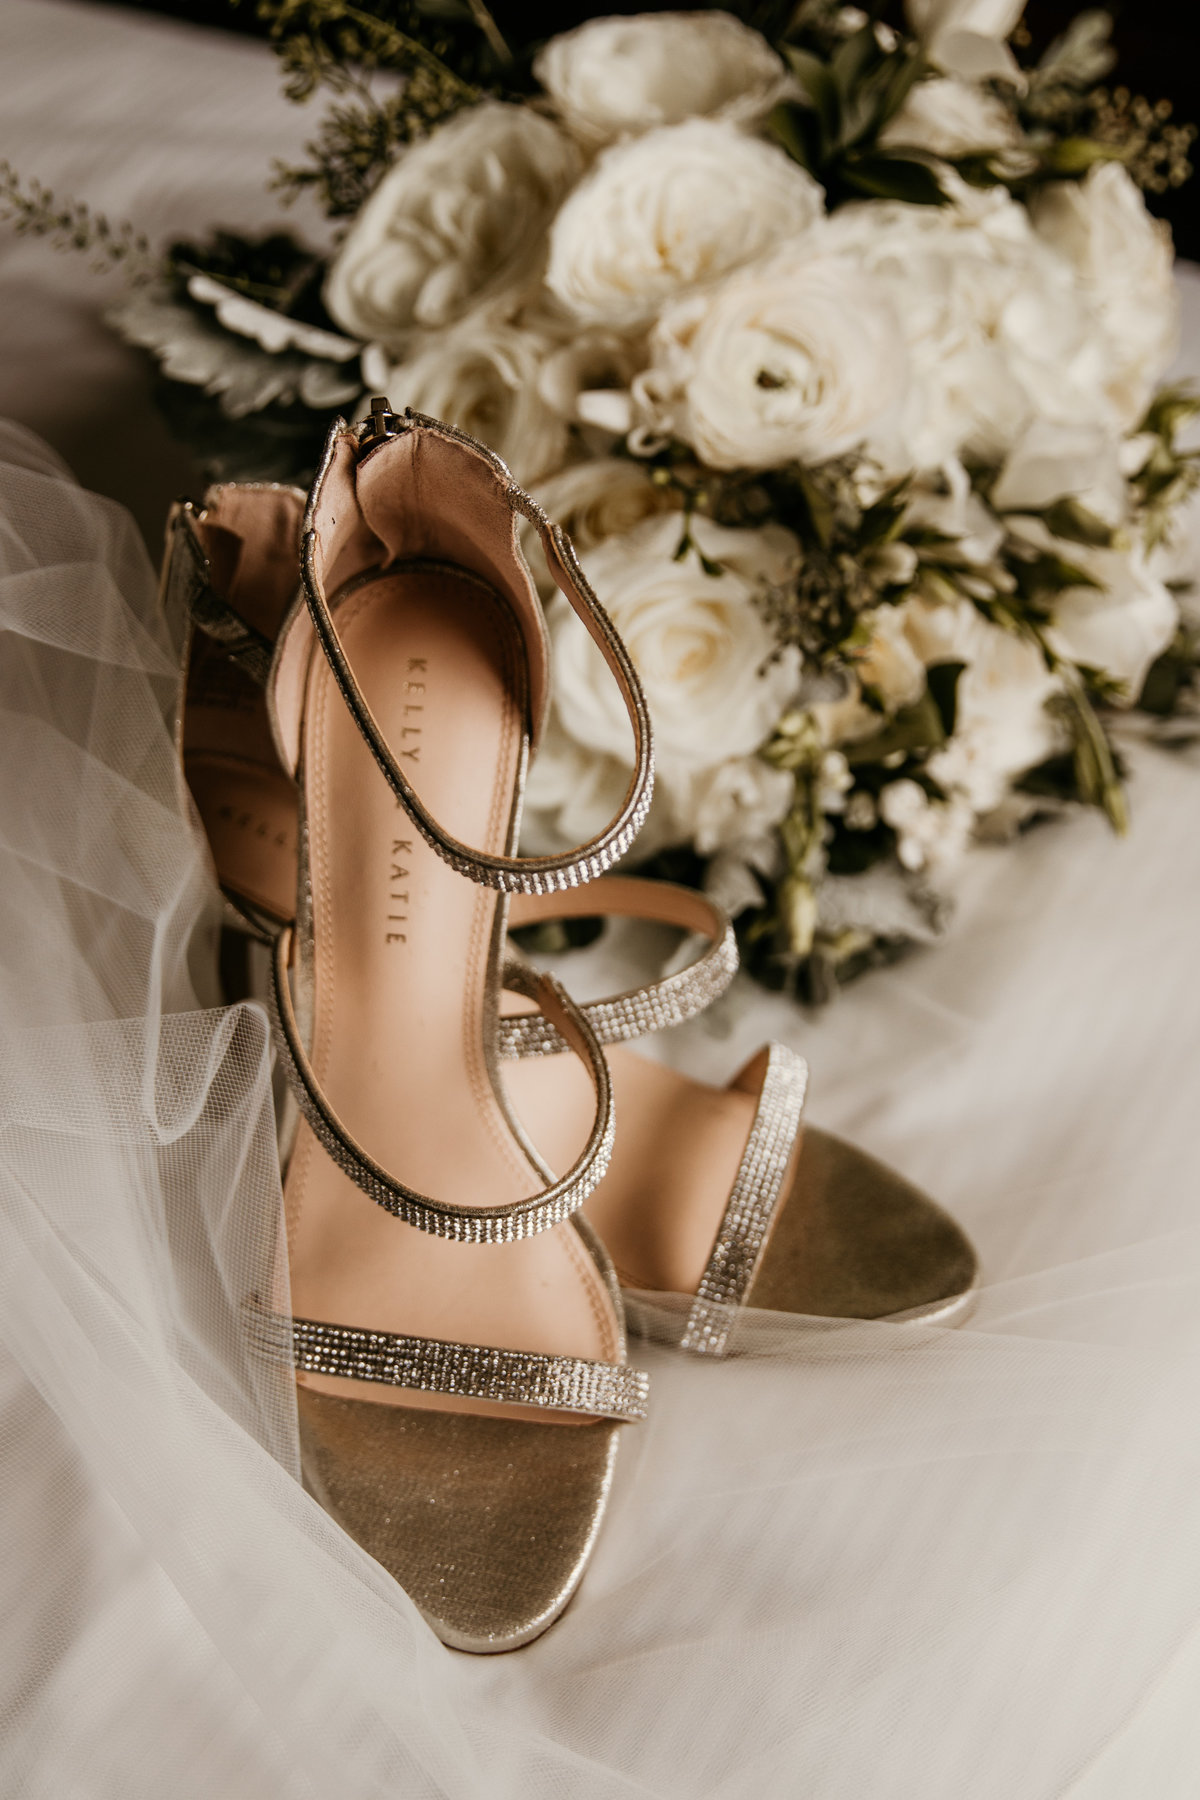 chicago-wedding-photographer-shoes-details-2